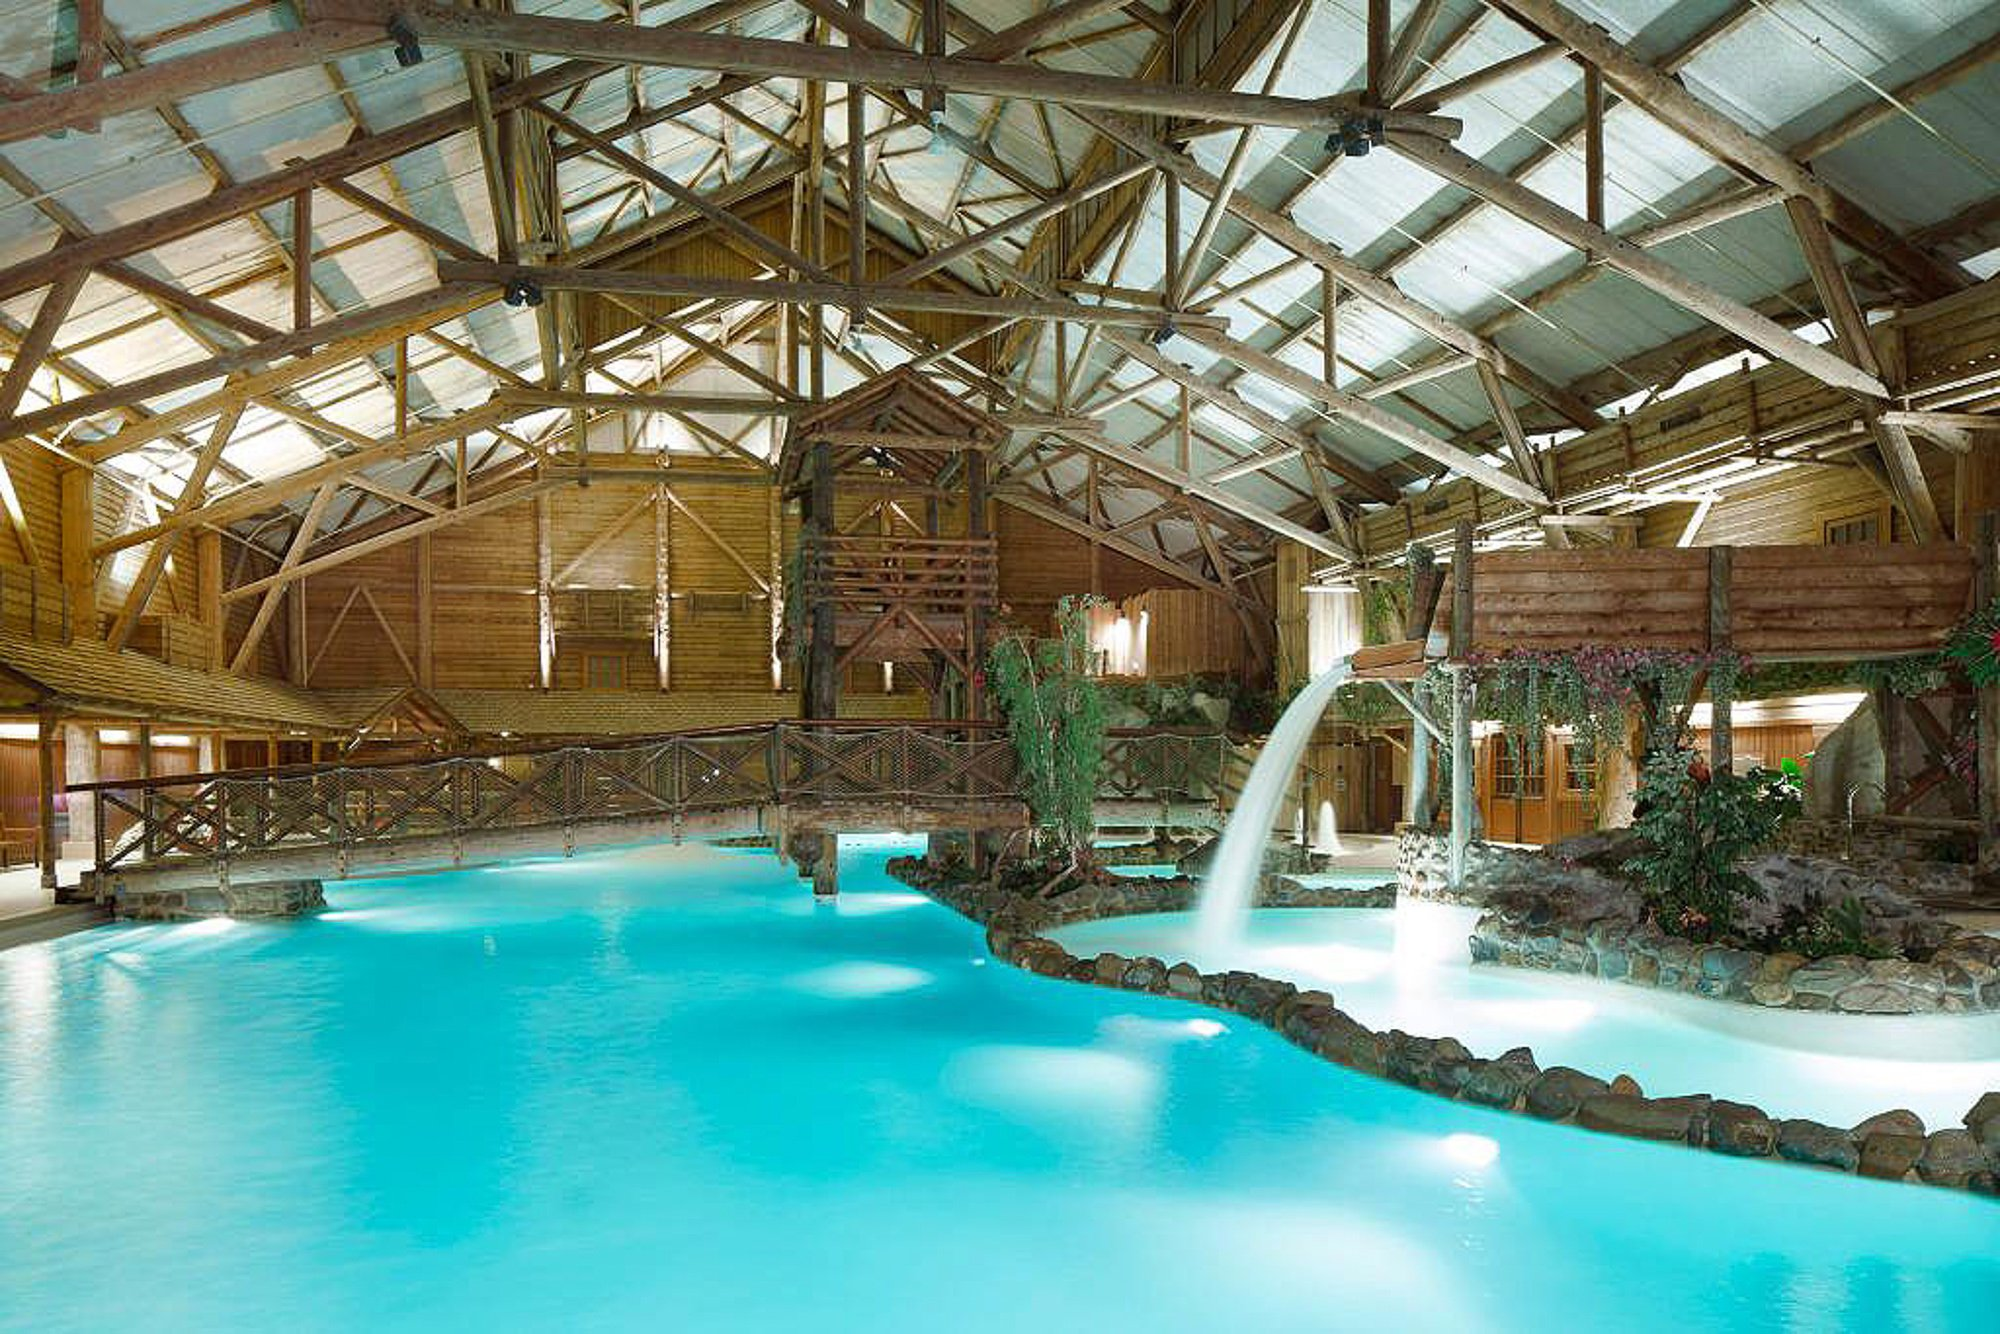 Disney's Davy Crockett Ranch indoor pool